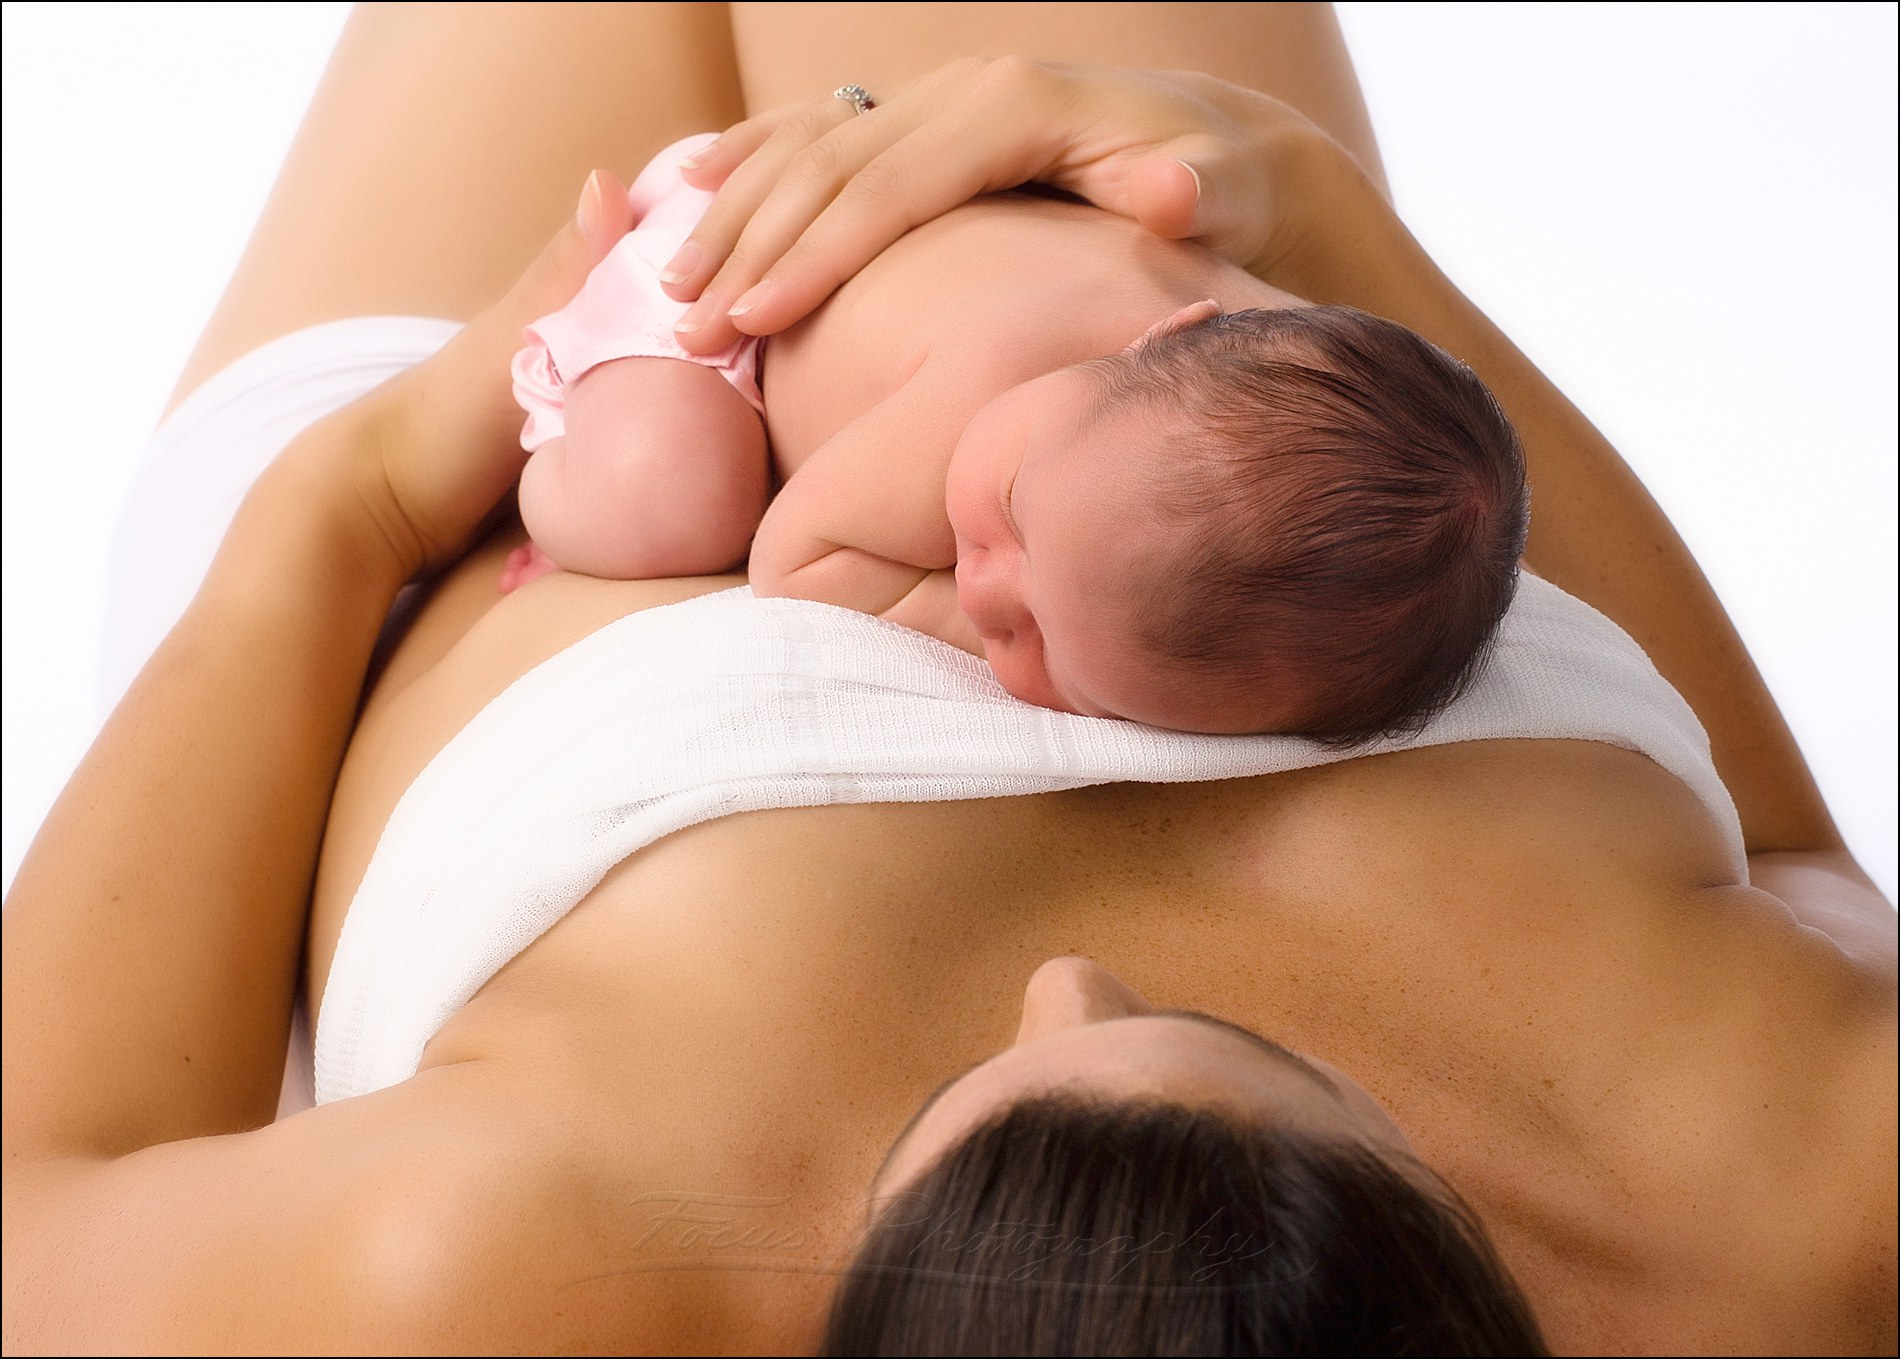 newborn family photography image of baby on mother's chest